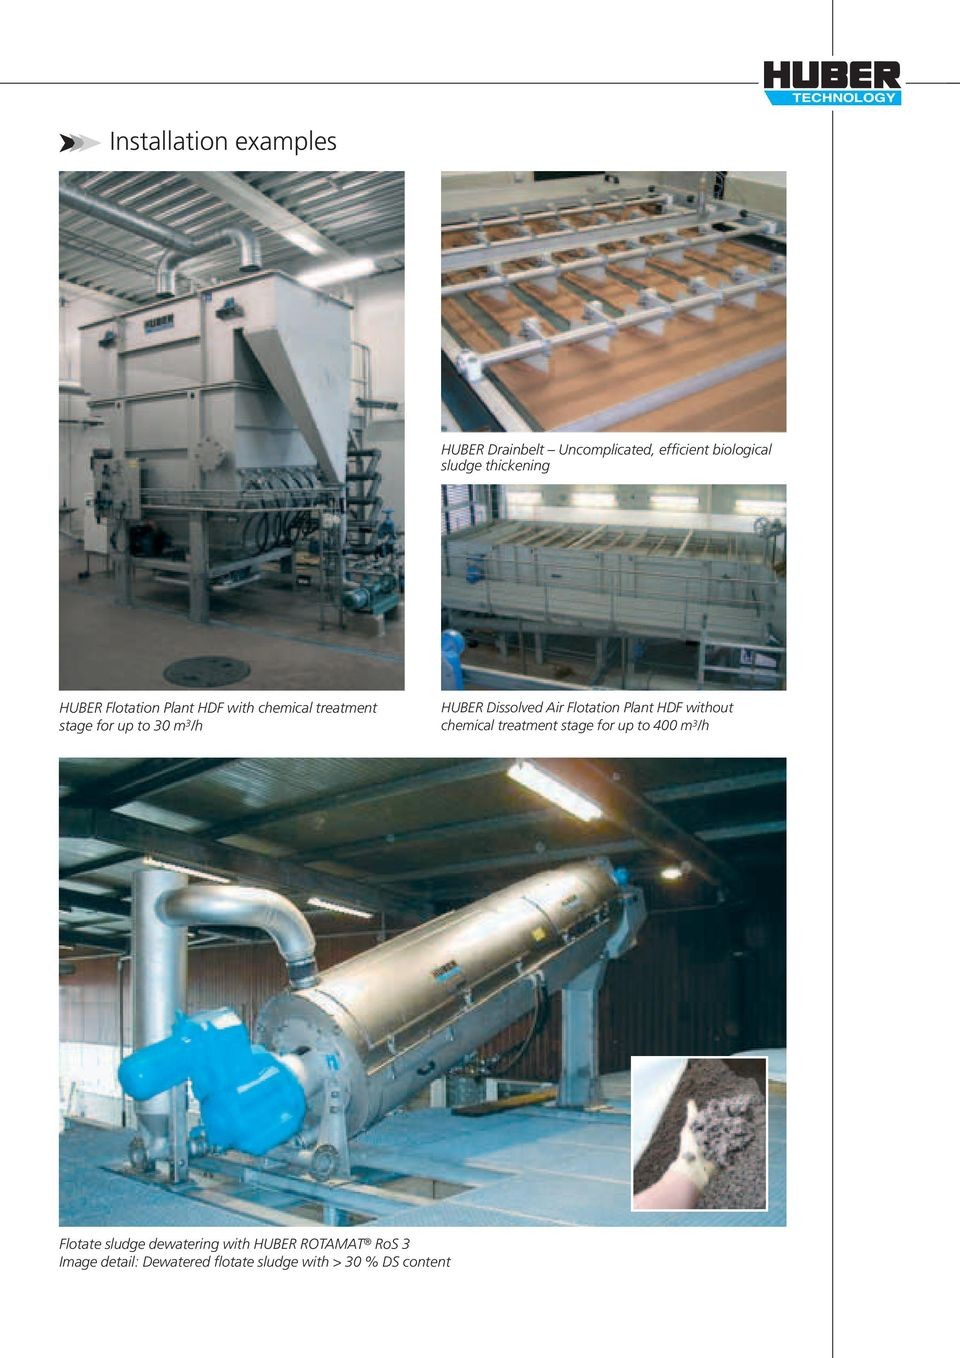 Air Flotation Plant HDF without chemical treatment stage for up to 400 m 3 /h Flotate sludge